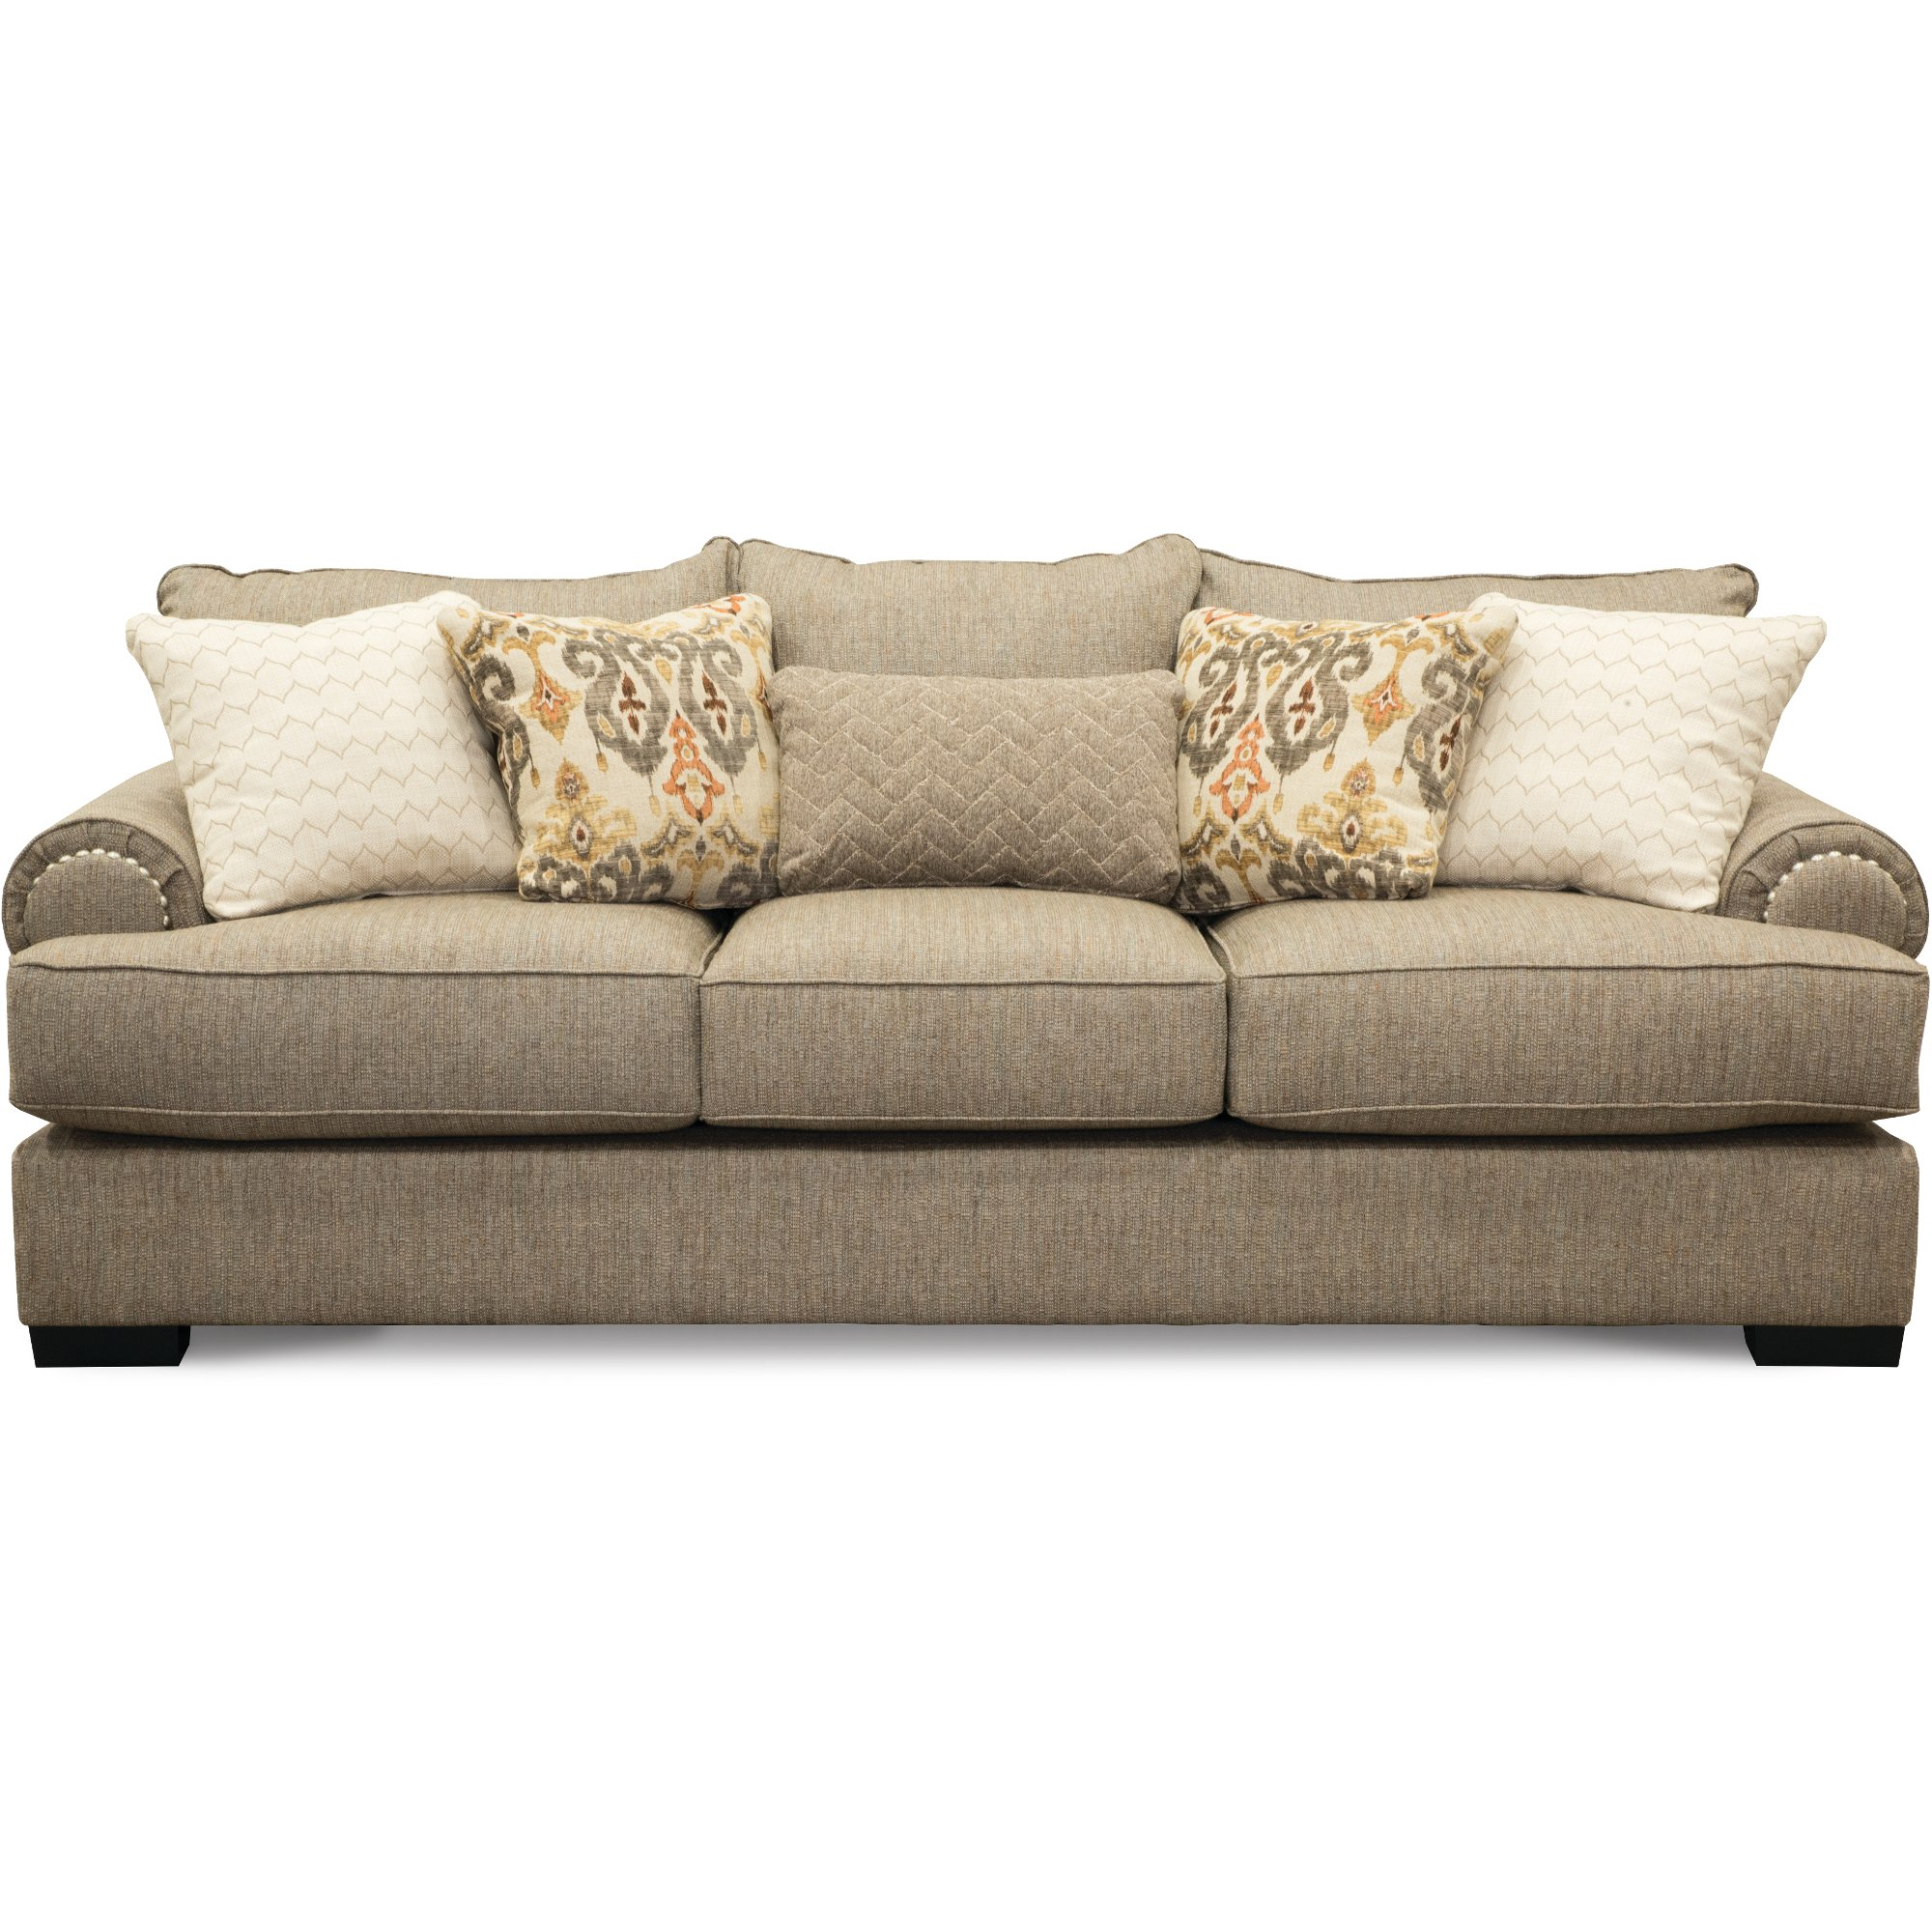 Casual Traditional Taupe Sofa - Bereta | RC Willey Furniture Store